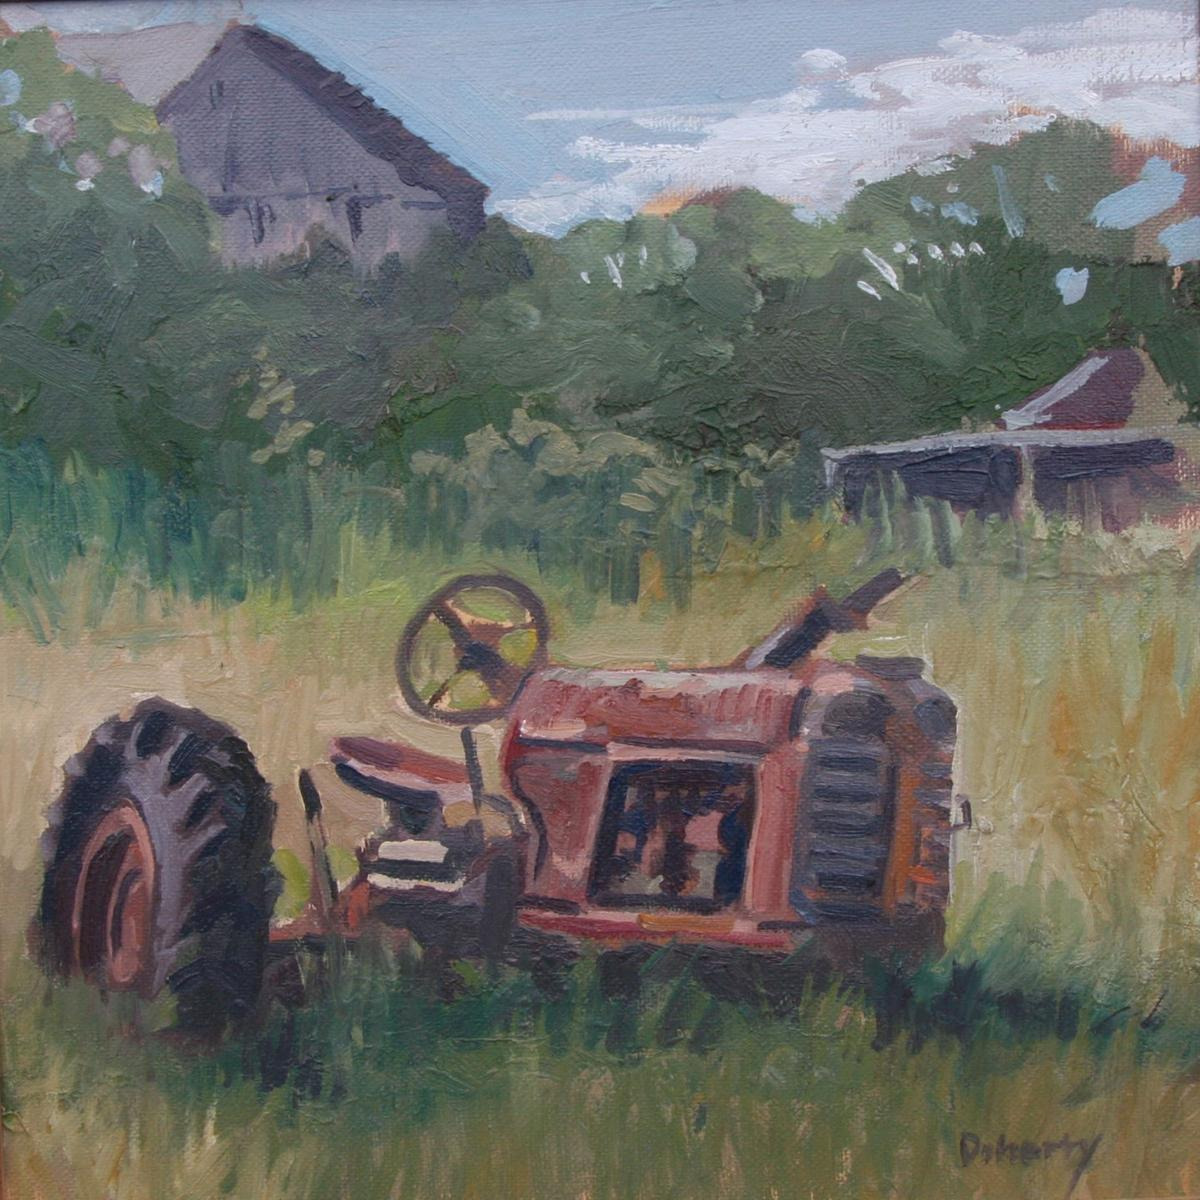 3. DOHERTY OLIVER TRACTOR 2015-06-19 10.49.09